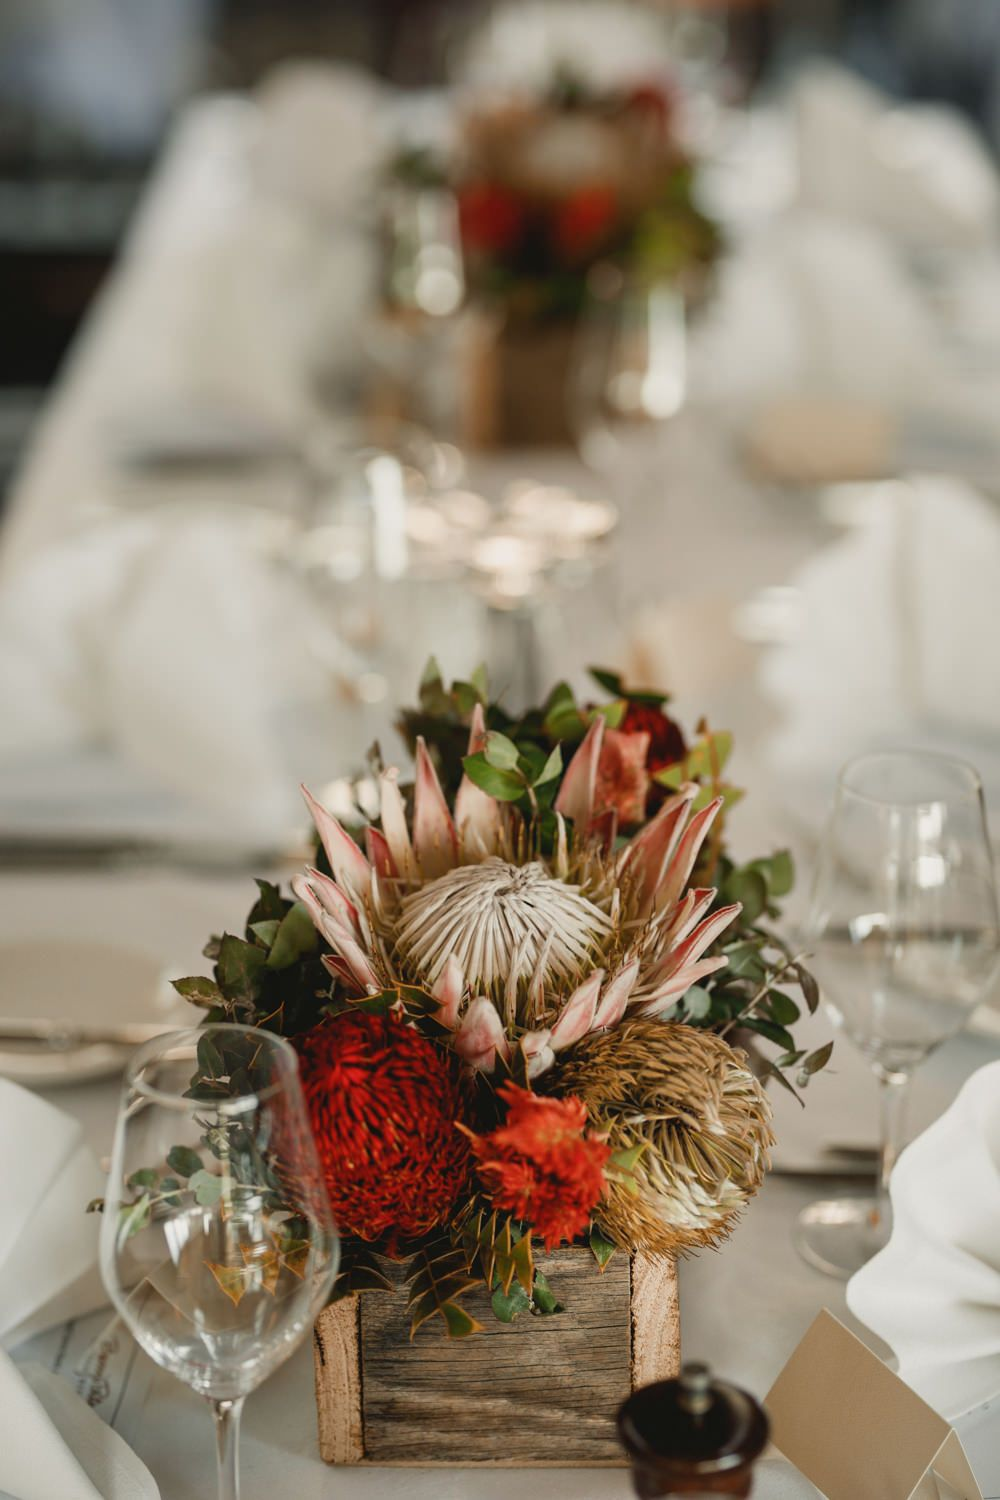 Rustic Table Centrepiece With Australian Native Flowers Christmas Table Centerpieces Cheap Wedding Decorations Wedding Table Flowers